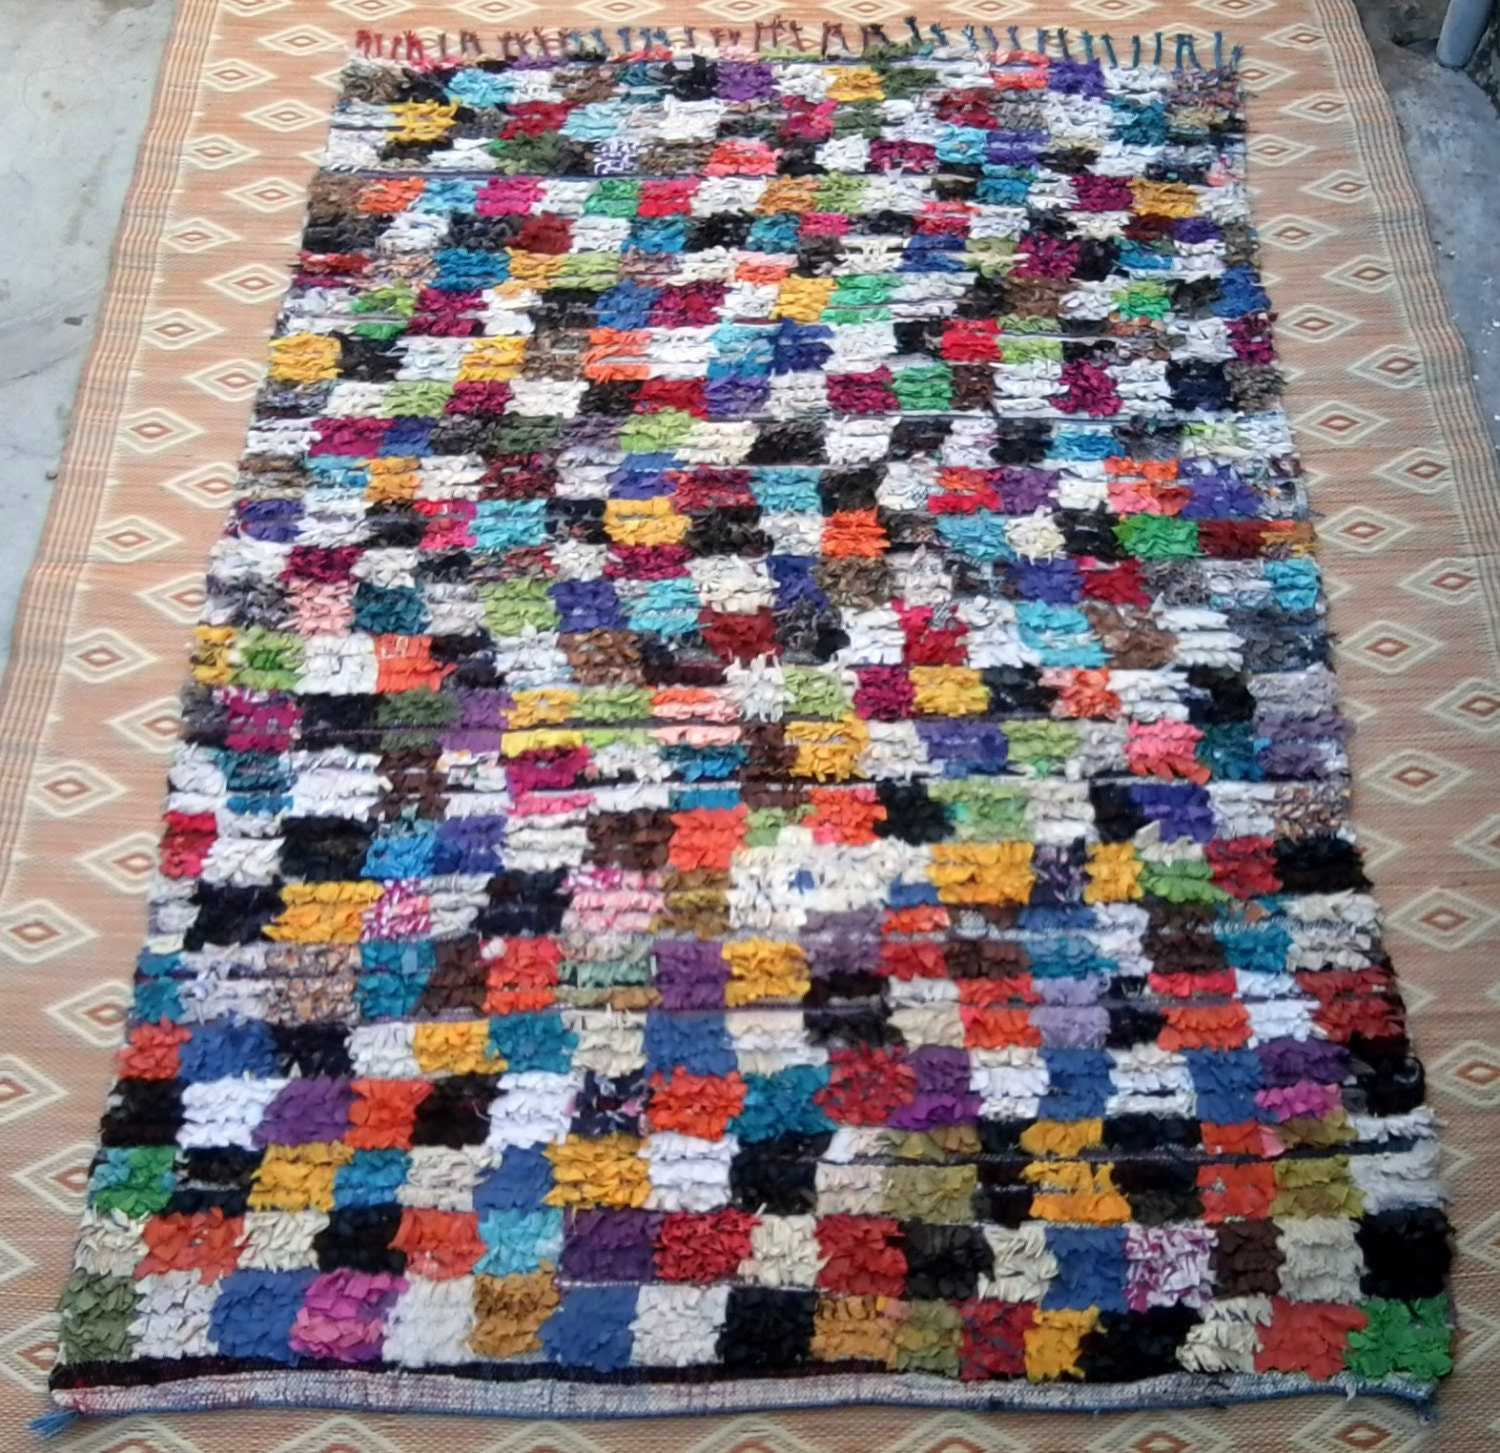 Large Vintage Moroccan Rug Woven By Hand From Scraps Of Fabric